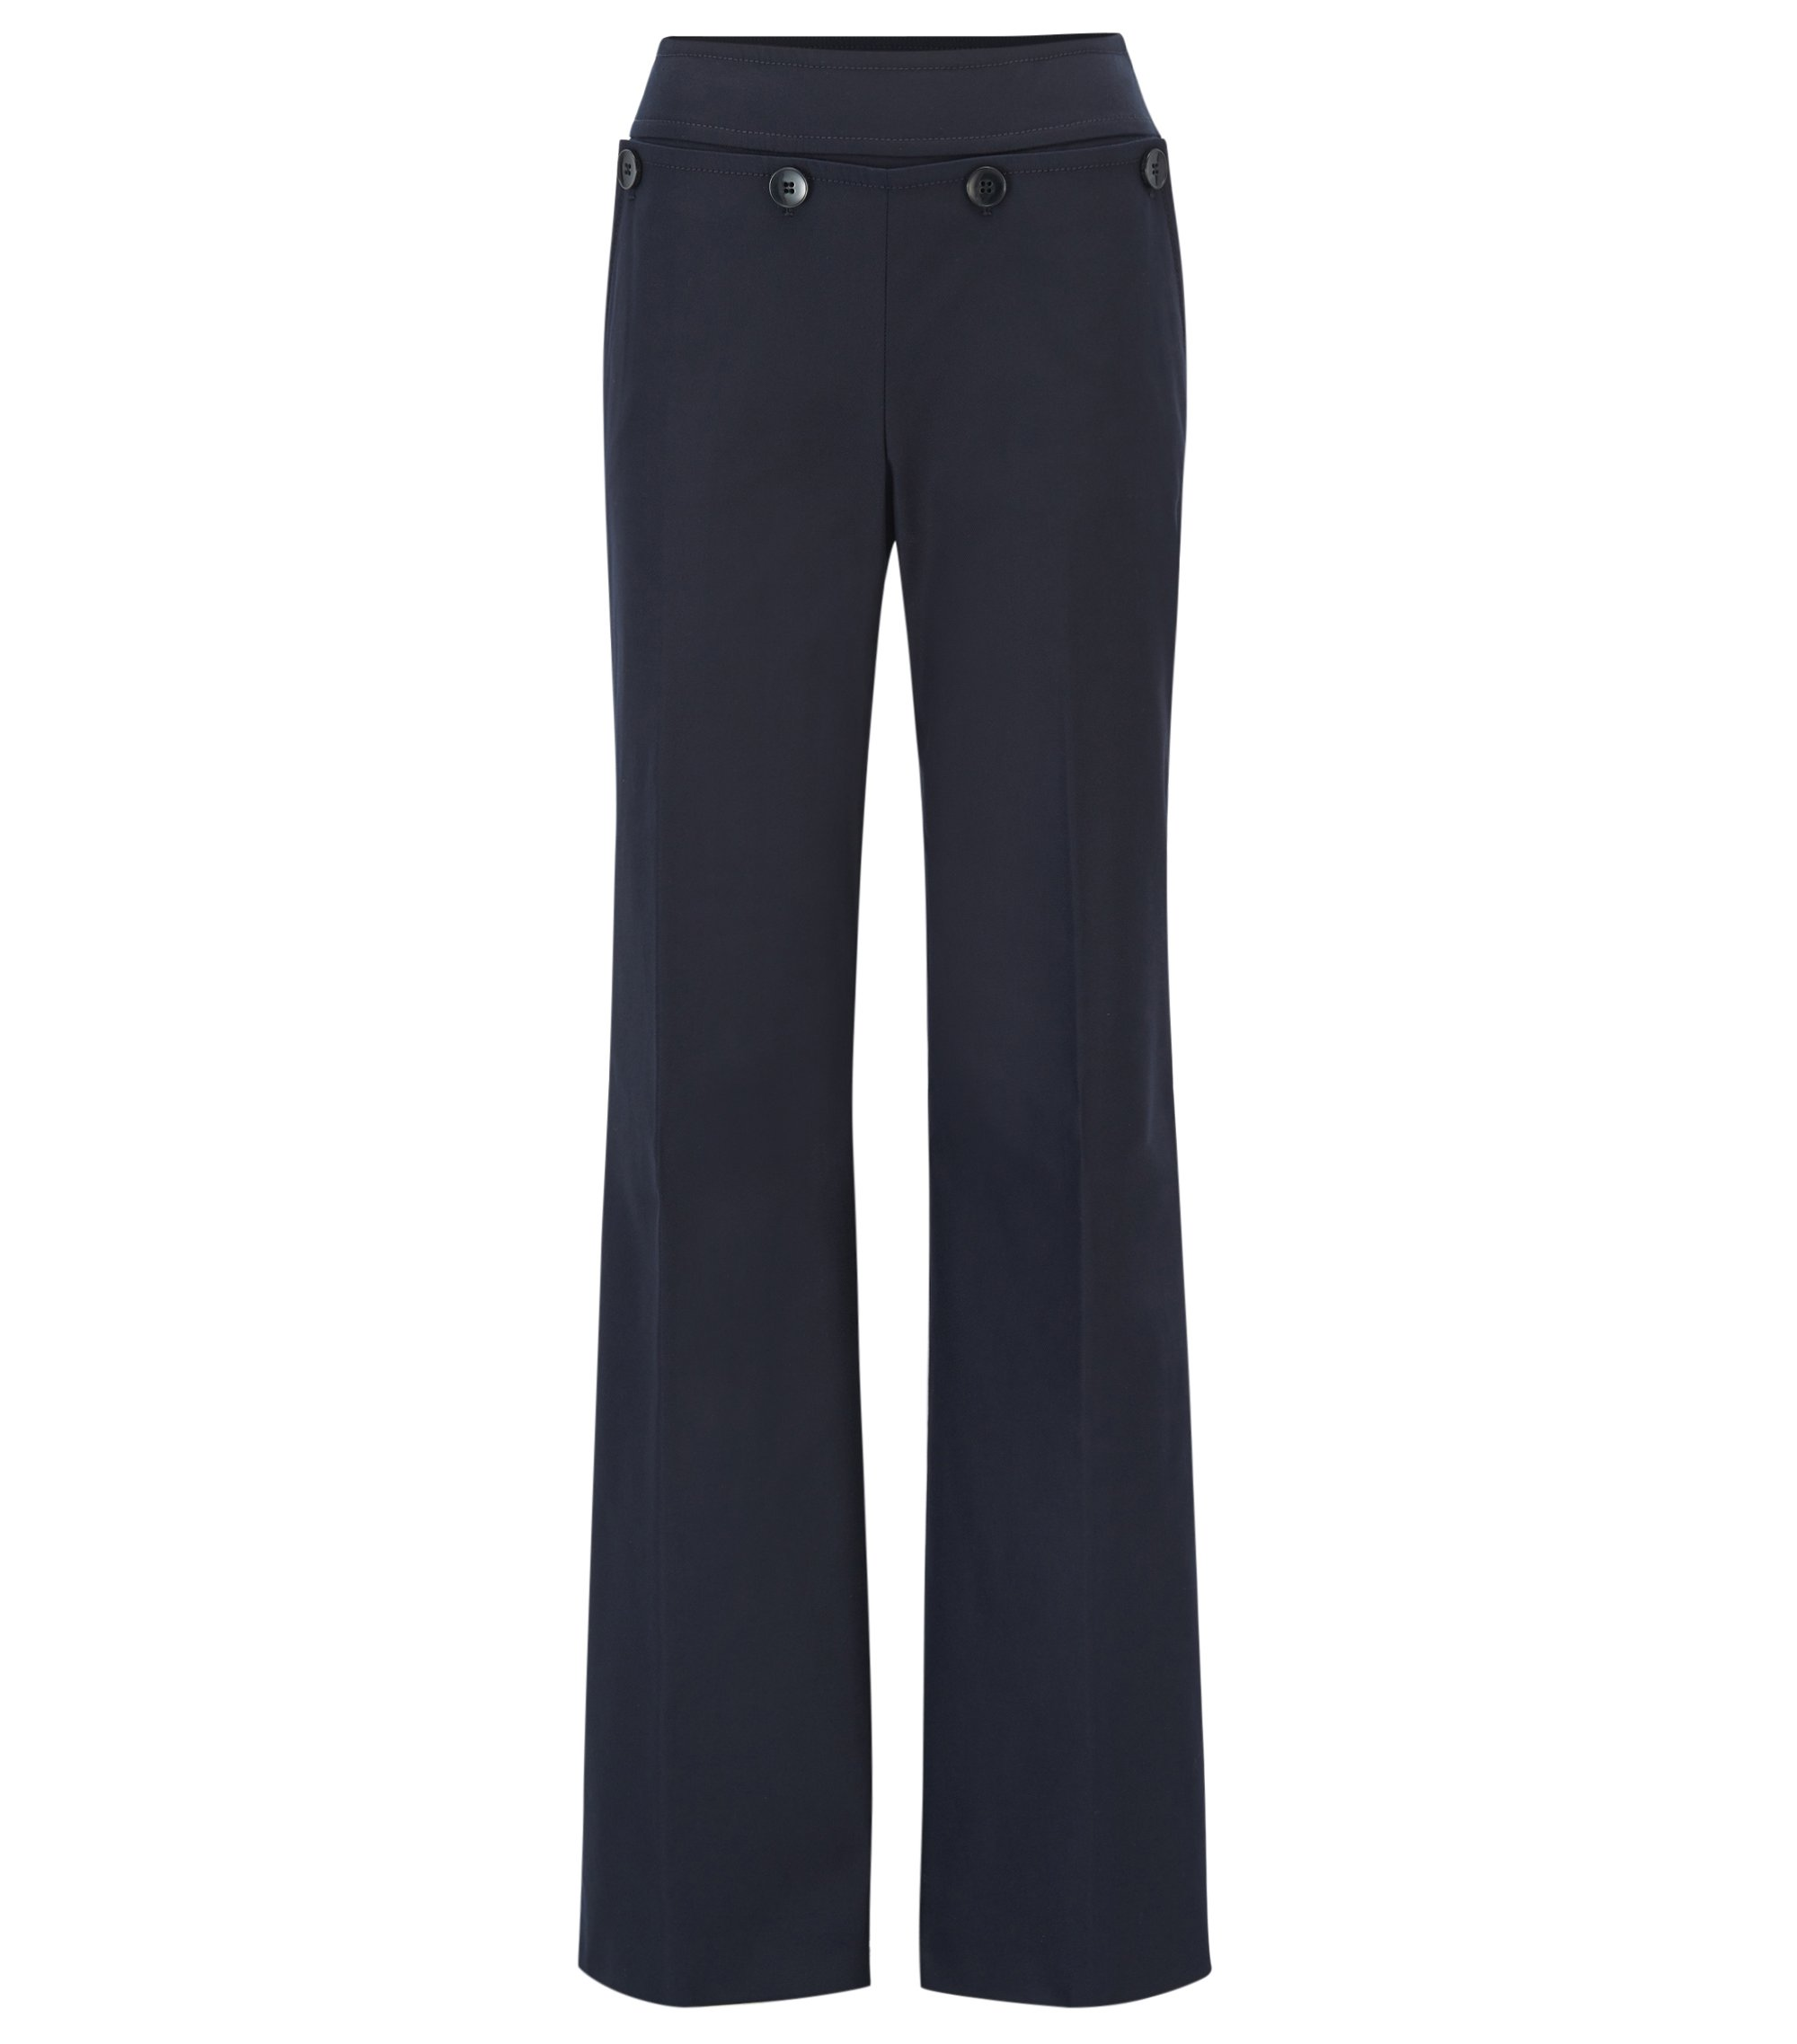 Pantalon à pont Regular Fit en coton stretch mélangé, Bleu foncé